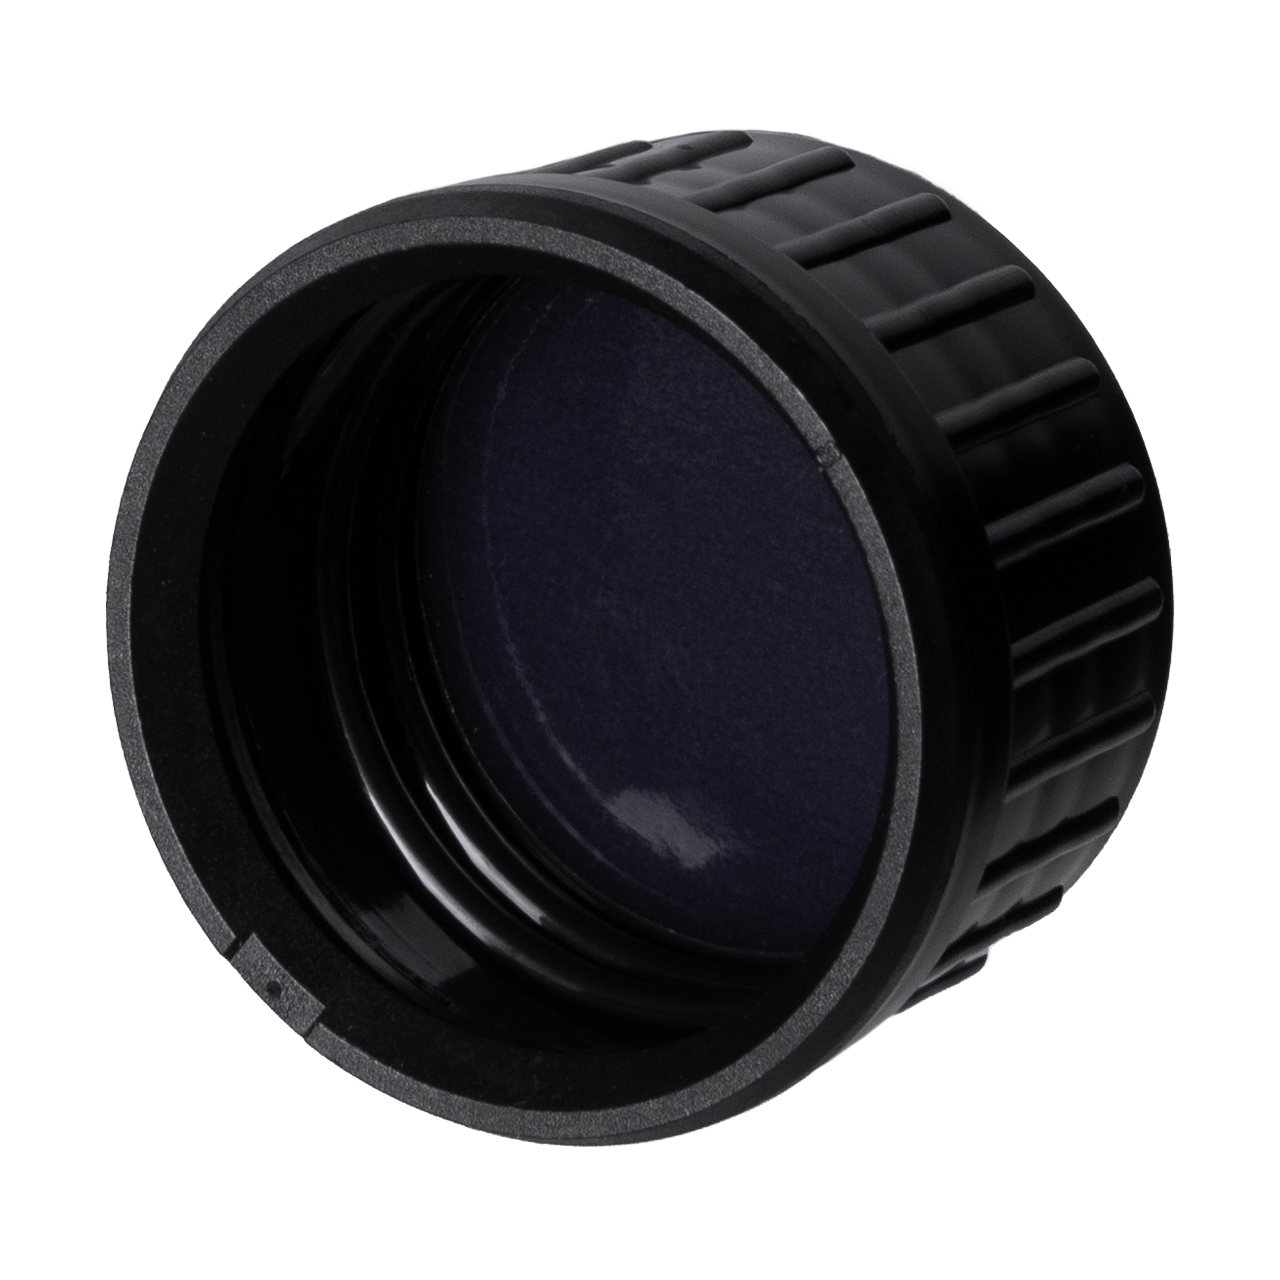 Tamper-evident closure 31.5 STD, series III, PP, black, ribbed with violet Phan inlay (for Castor 100-1000 ml & Pollux 500 ml)